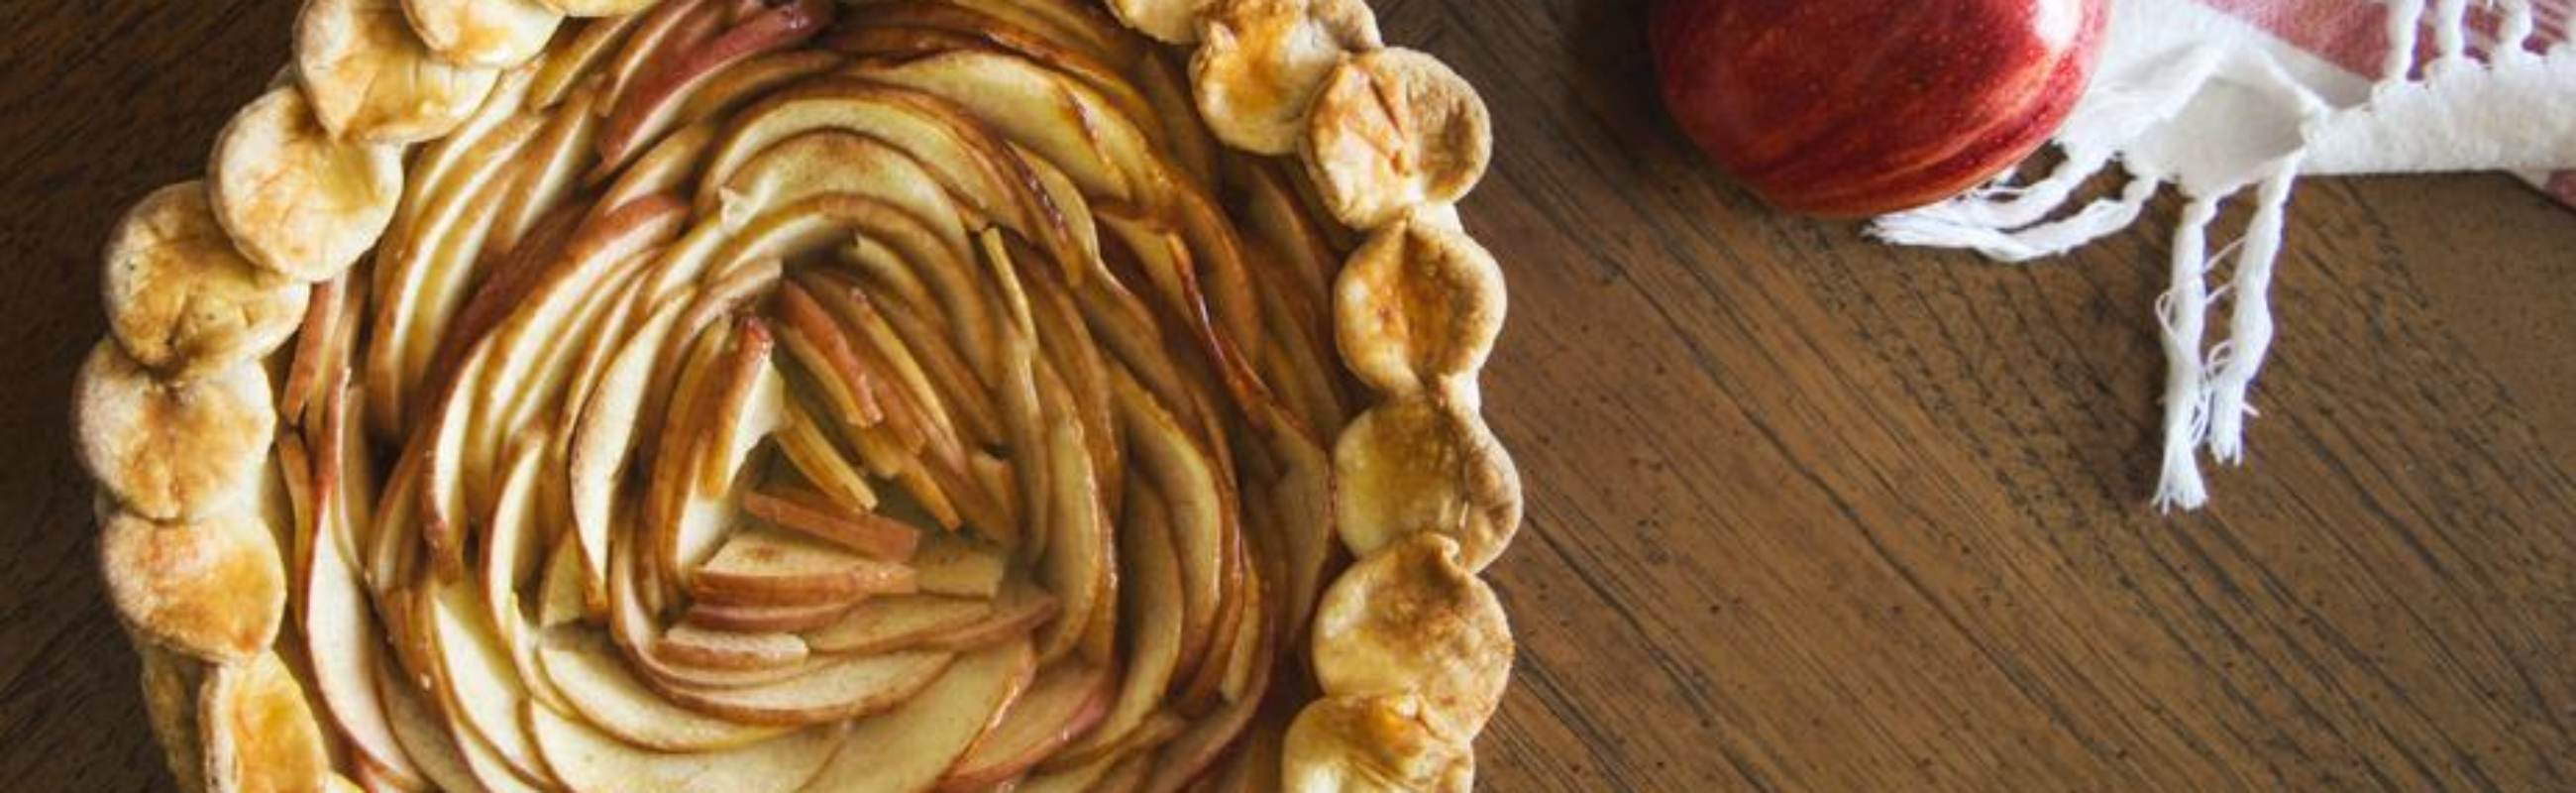 baked-apple-pie_925x